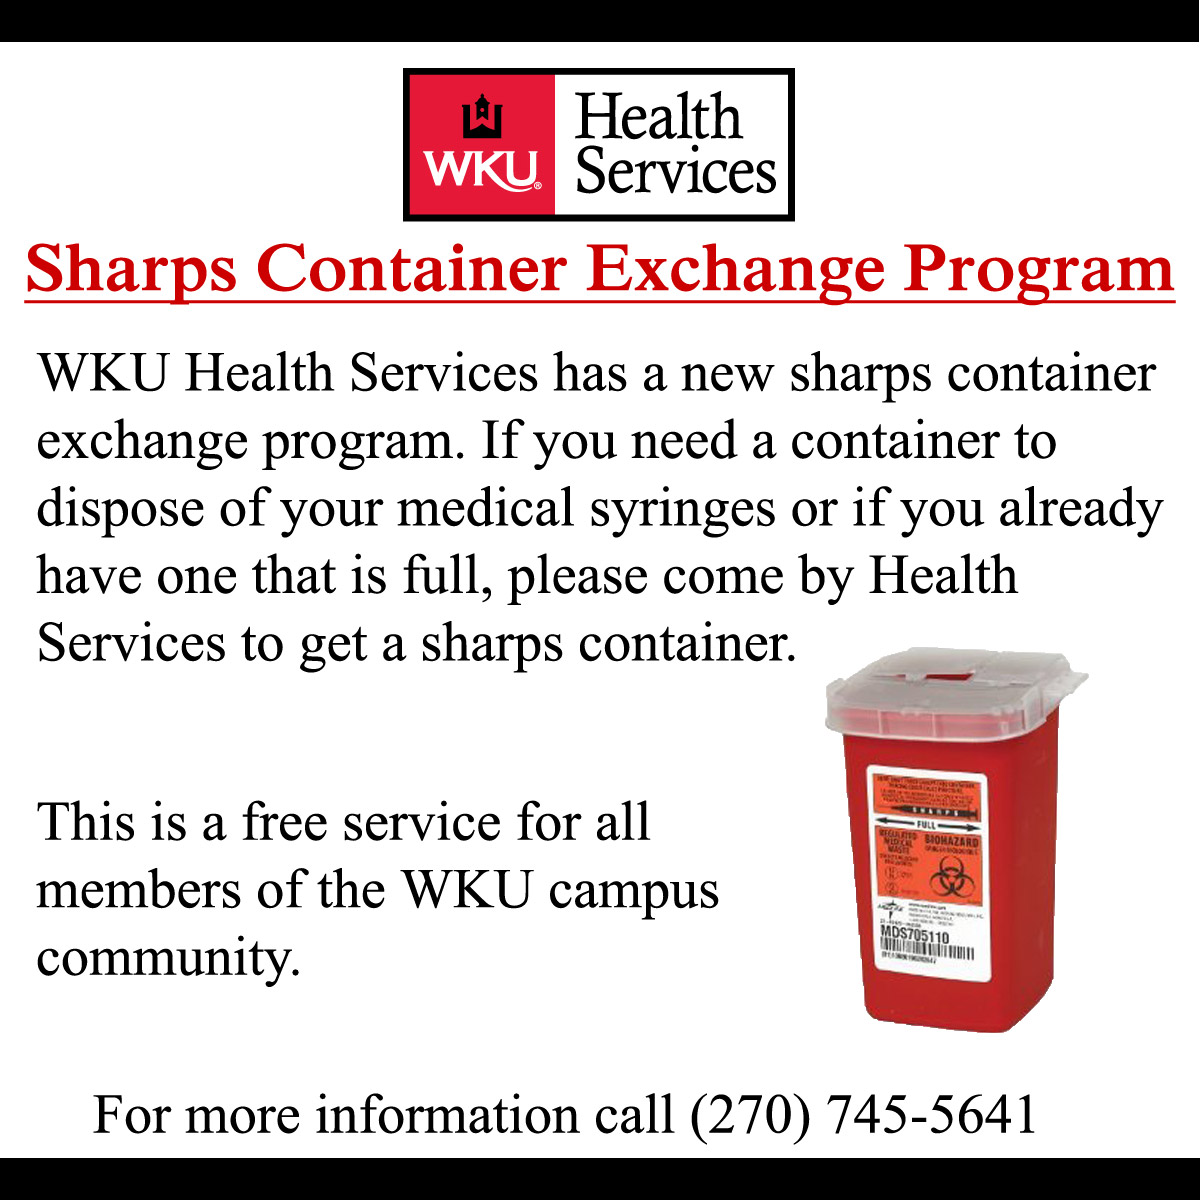 WKU Health Services sharps container exchange program